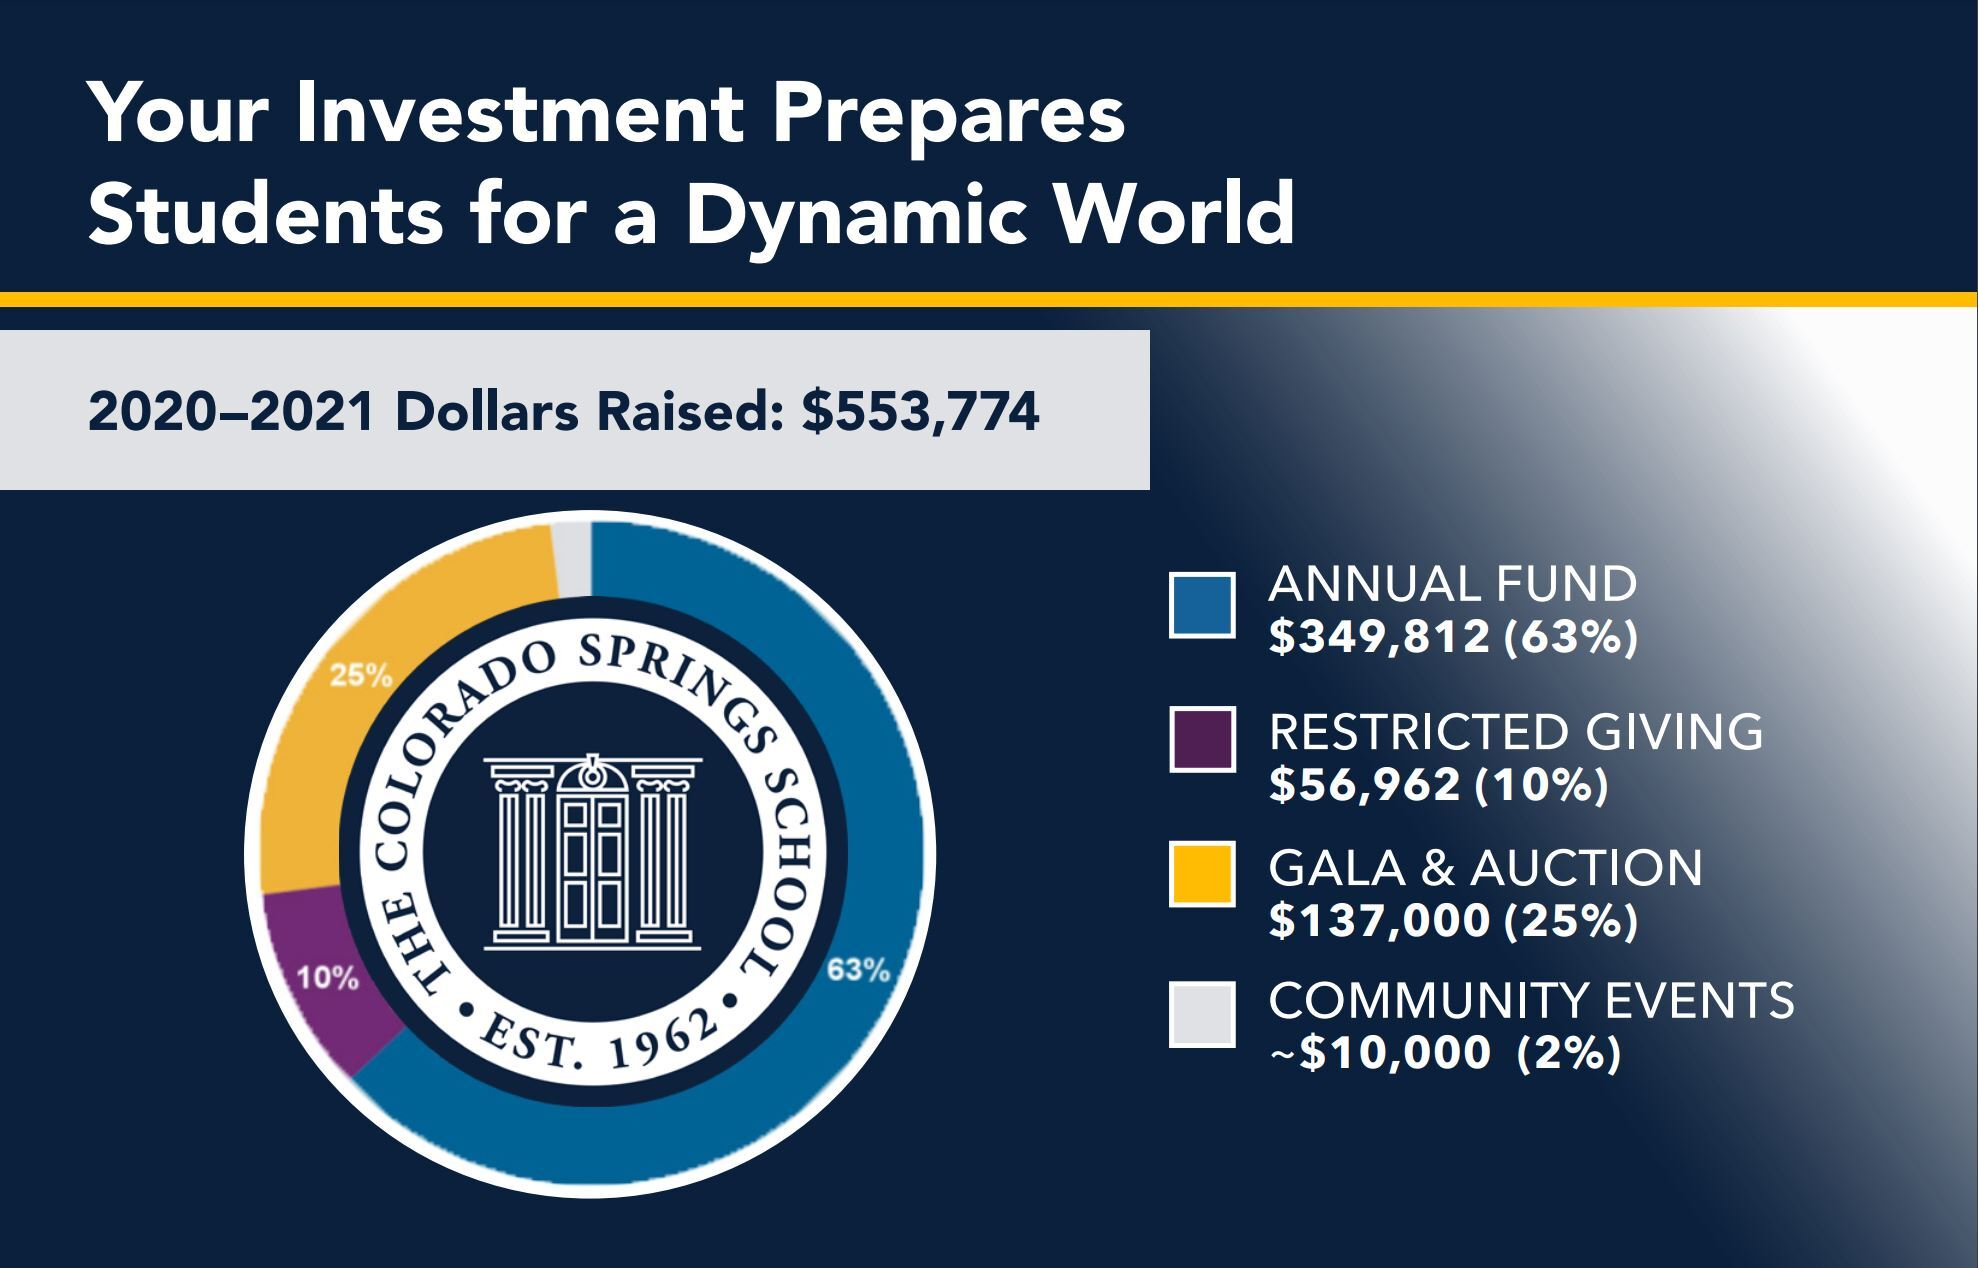 2020-2021 Fundraising Results